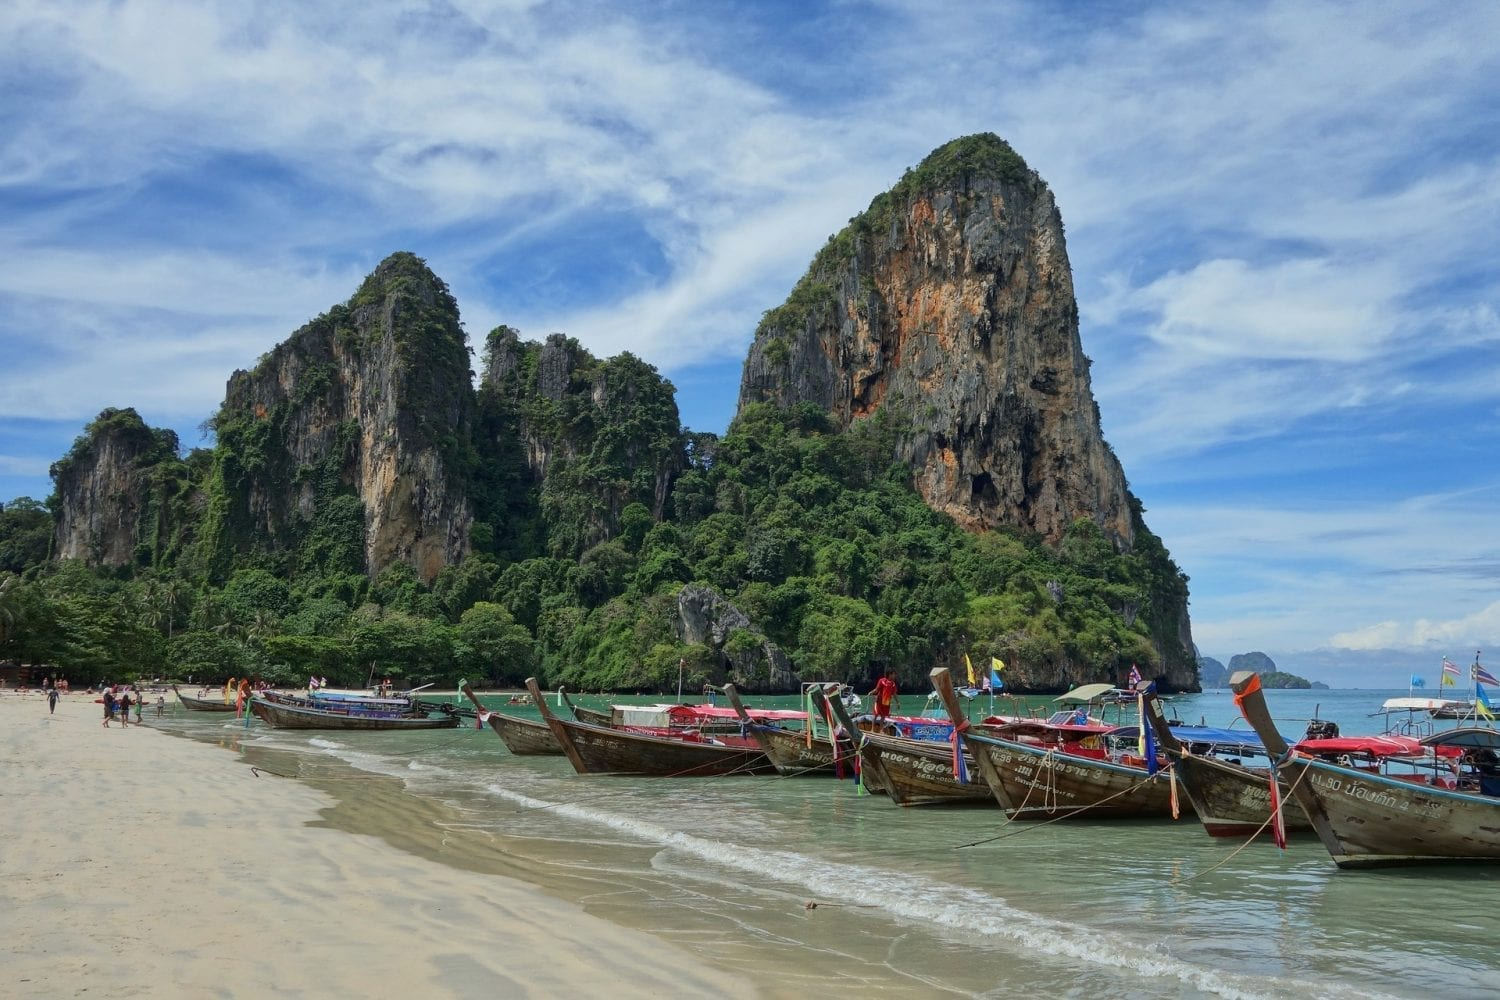 Staying at Rapala Rock Wood Resort in Thailand | Wanderlust Movement | #railaybeach #thailand #budgettravel #budgetaccommodation #traveltips #backpacking